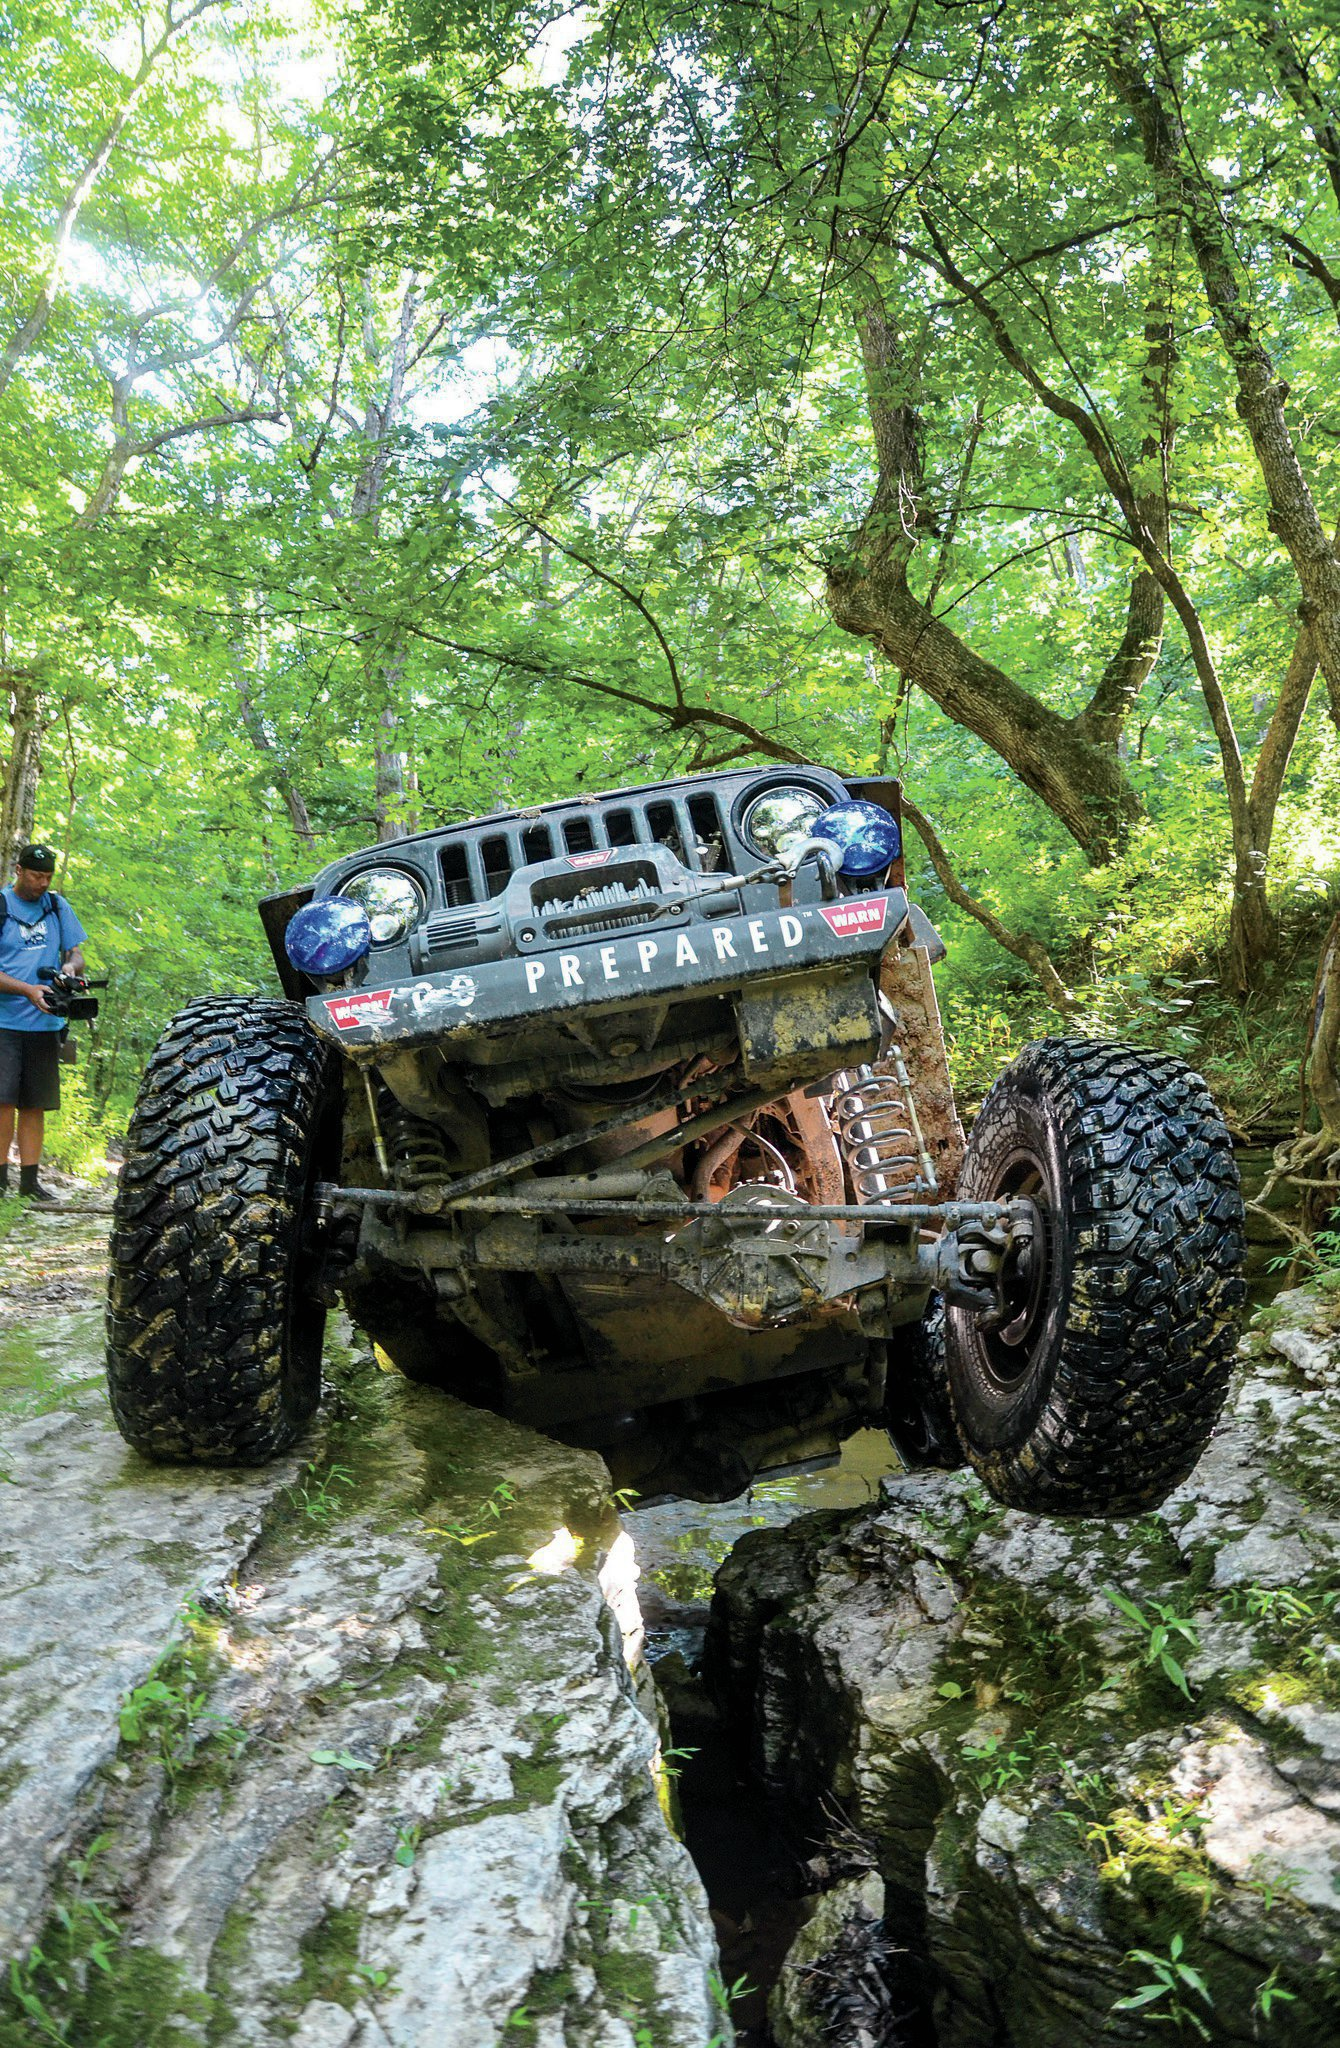 Chris Durham has a pretty solid formula for building a capable yet road drivable UA rig. This year he was behind the wheel of a friend's '04 TJ. Because the rig was kept low and stable, Durham has confidence when he aims the wheels at very difficult lines. He is pretty good at one-shotting most obstacles. Here he crawls the crack called Can Opener on a Pike County, Illinois, trail known as the Mystery Trail. <p></p><p></p>